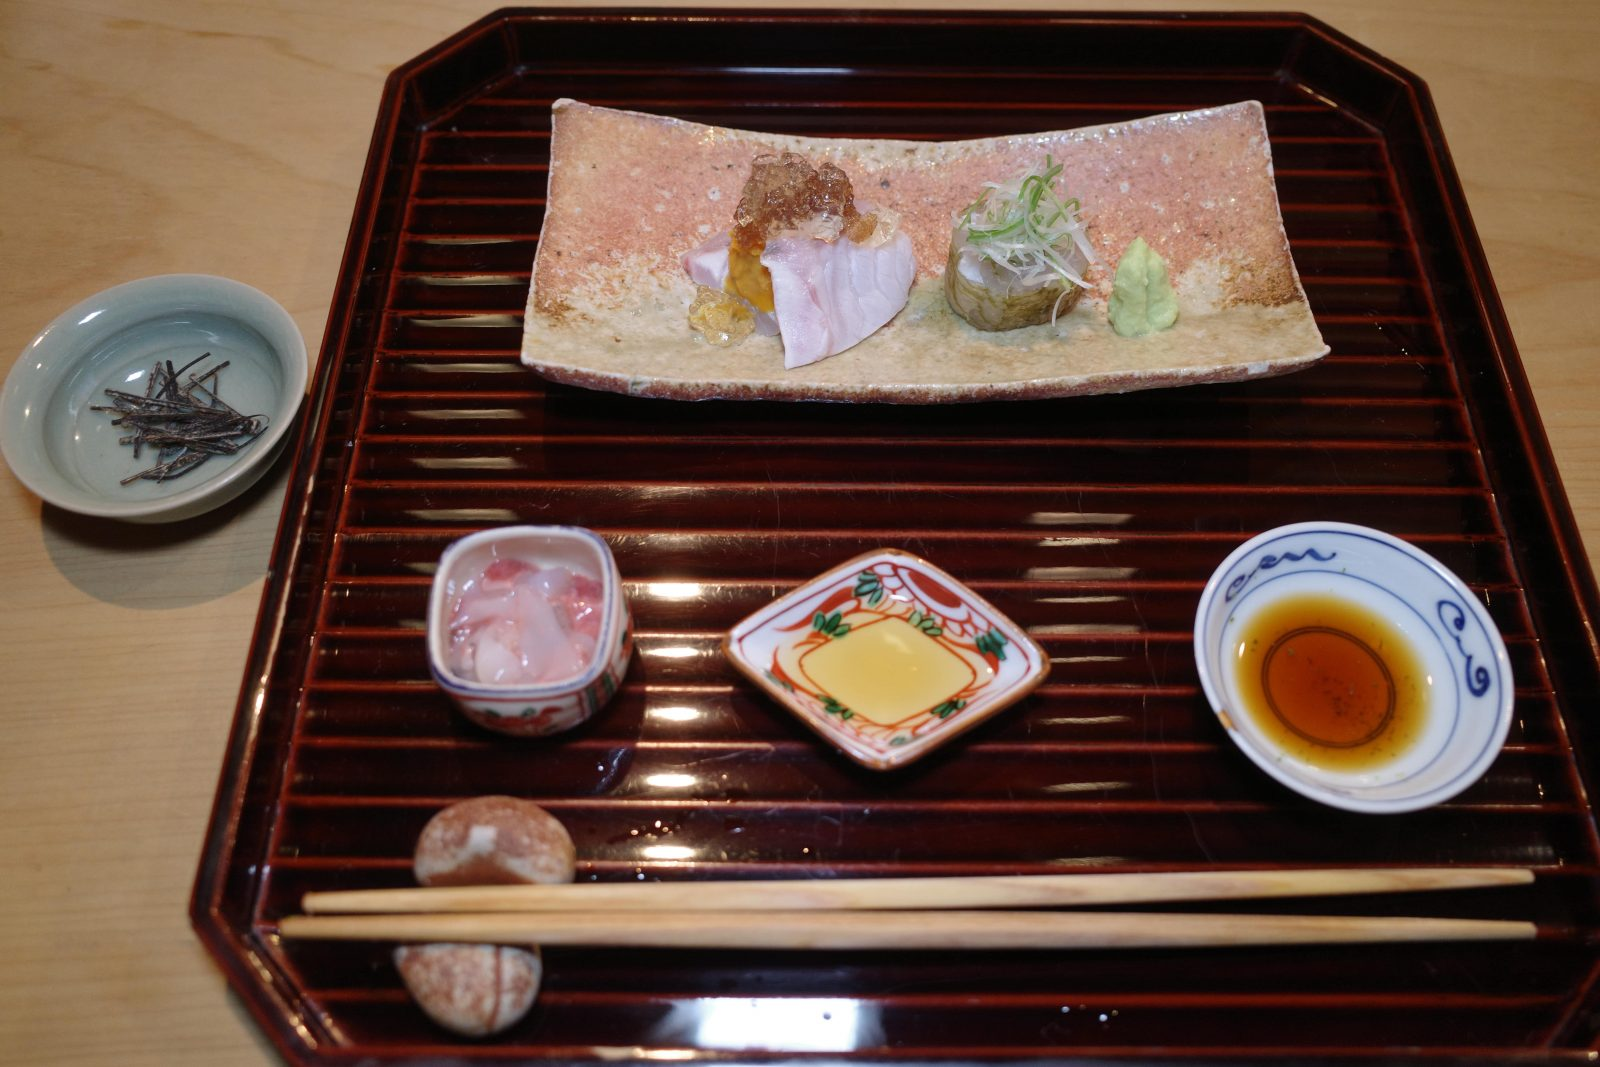 Appetisers including mahata with uni, and shiroebi kelp on the side